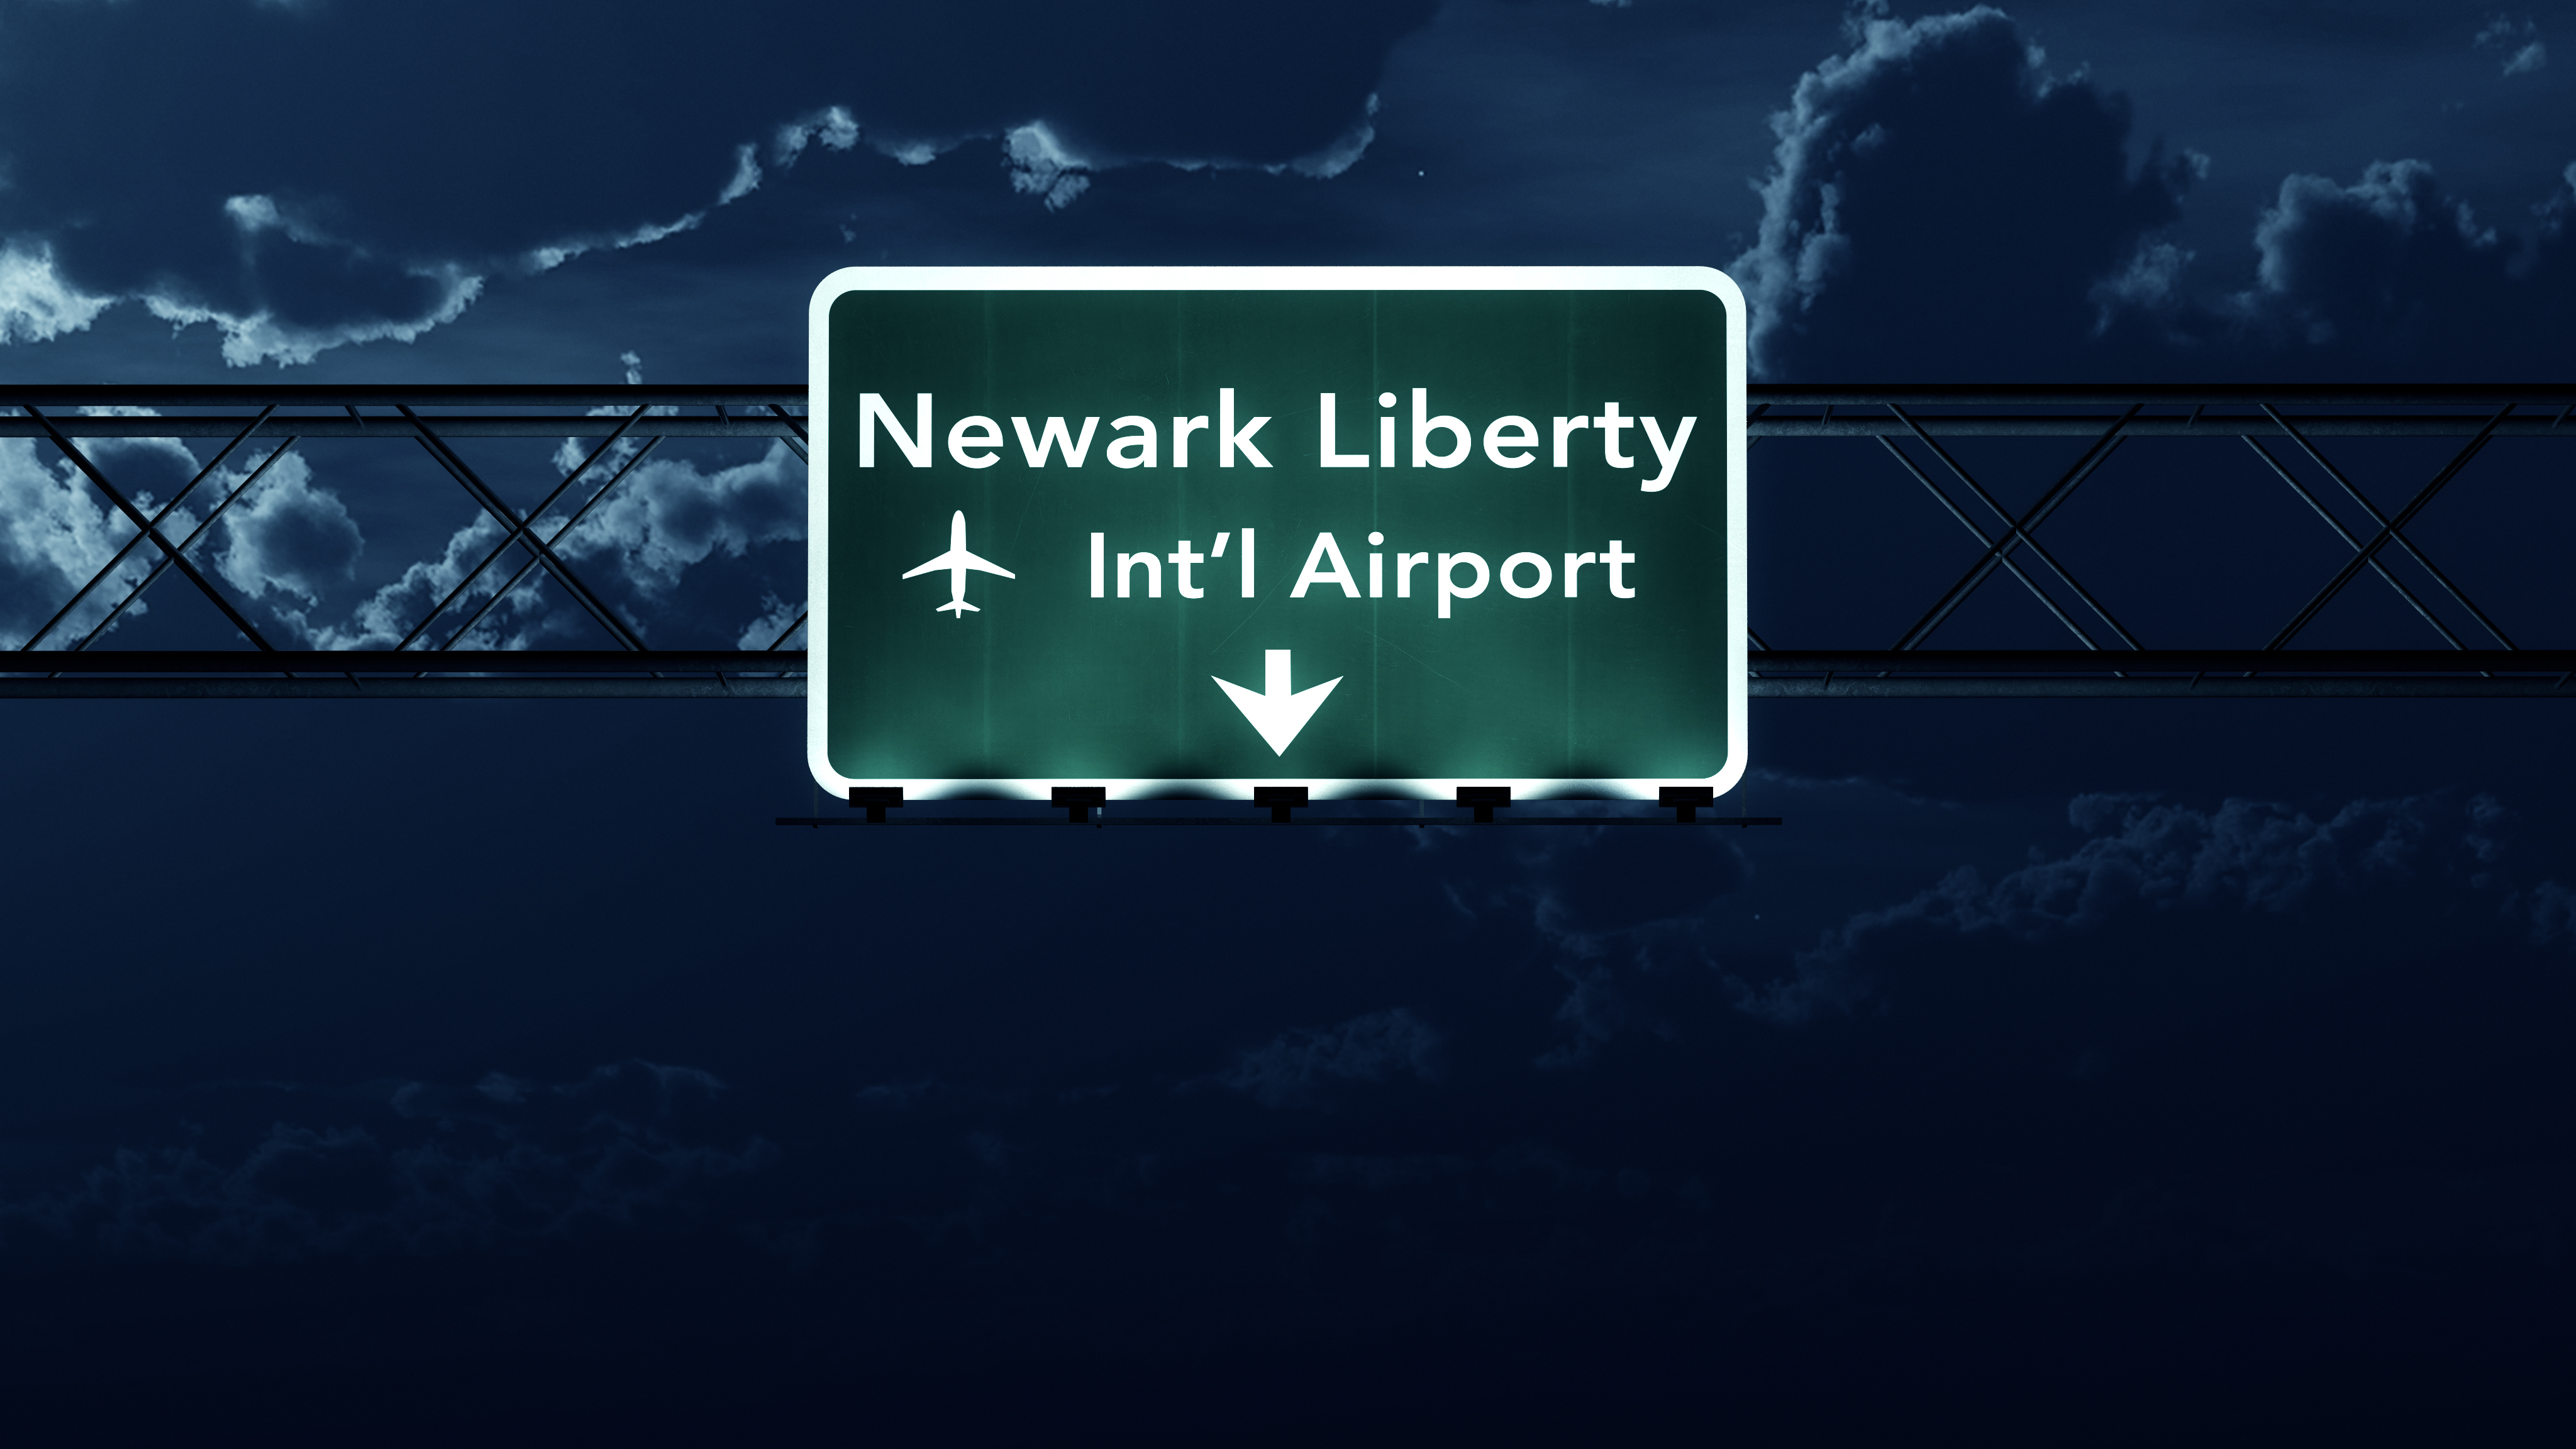 EWR airport directions at night